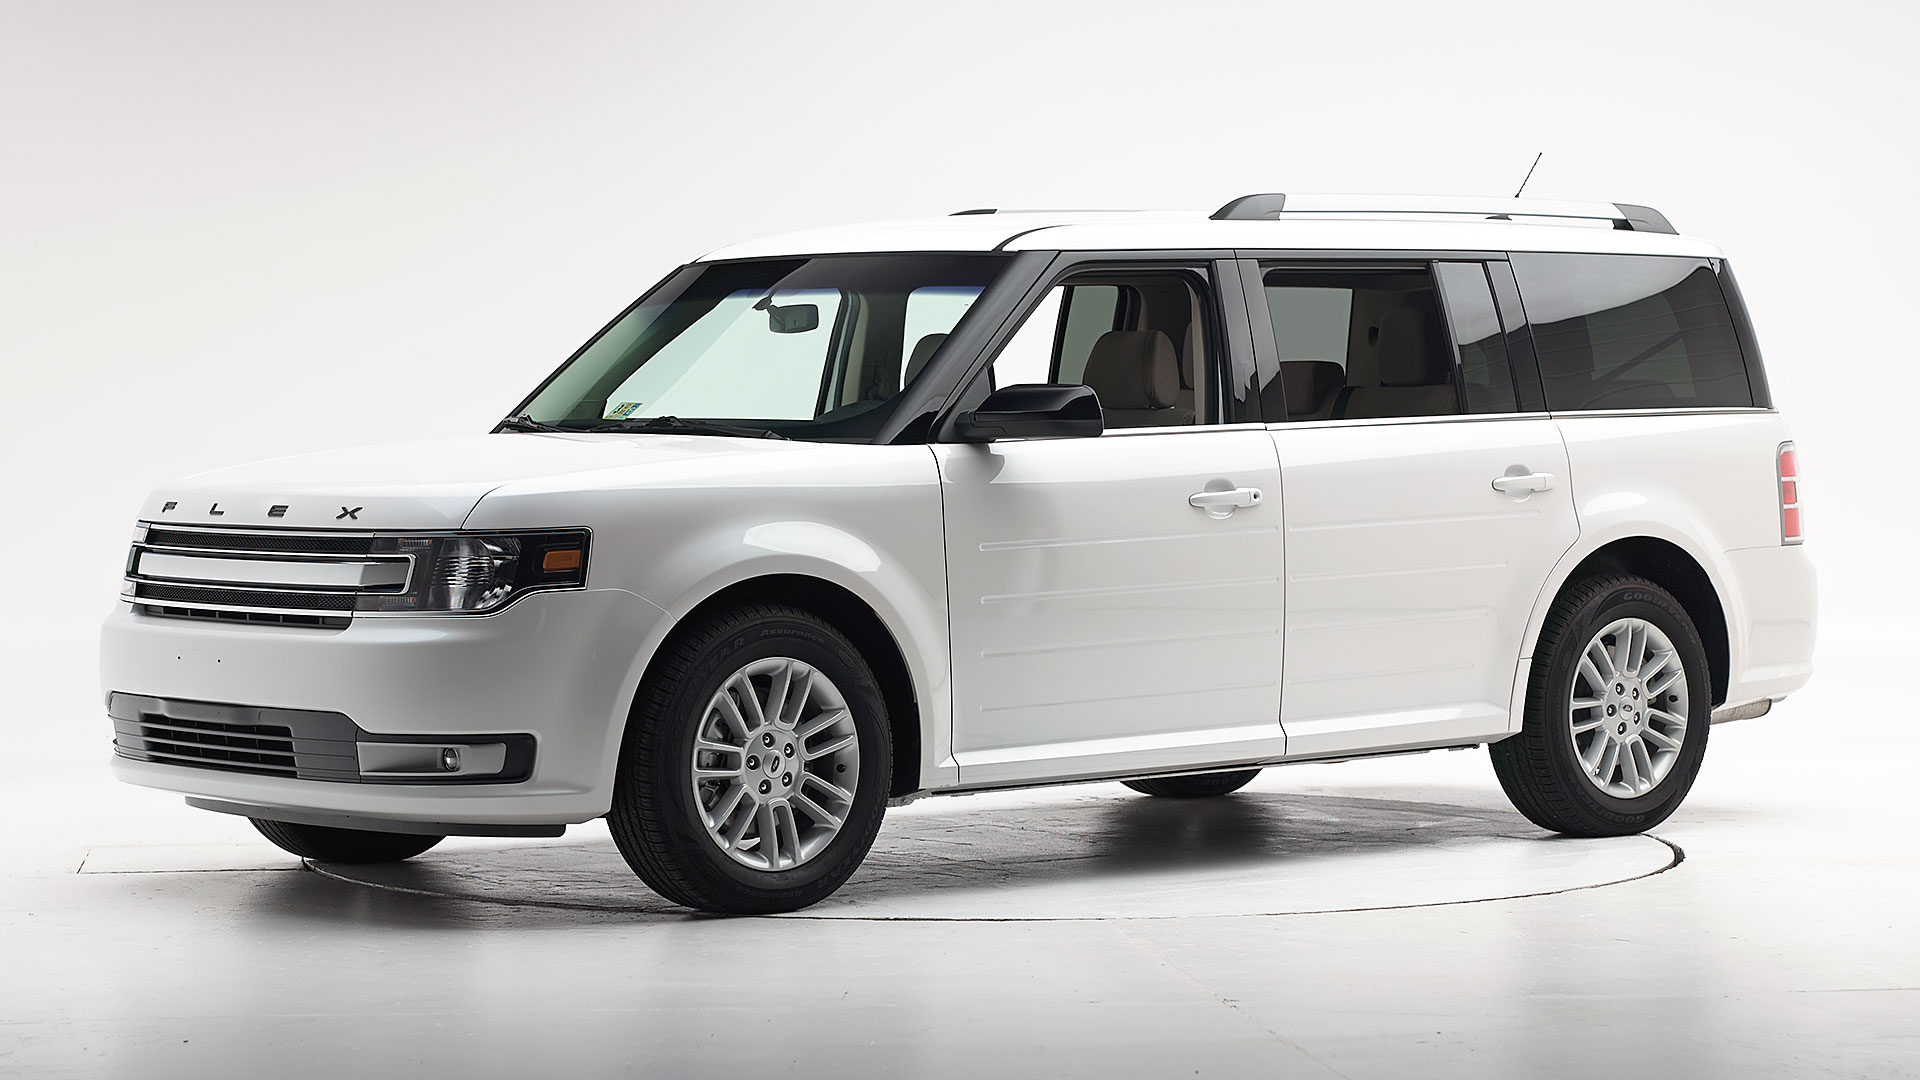 2015 Ford Flex 4-door SUV